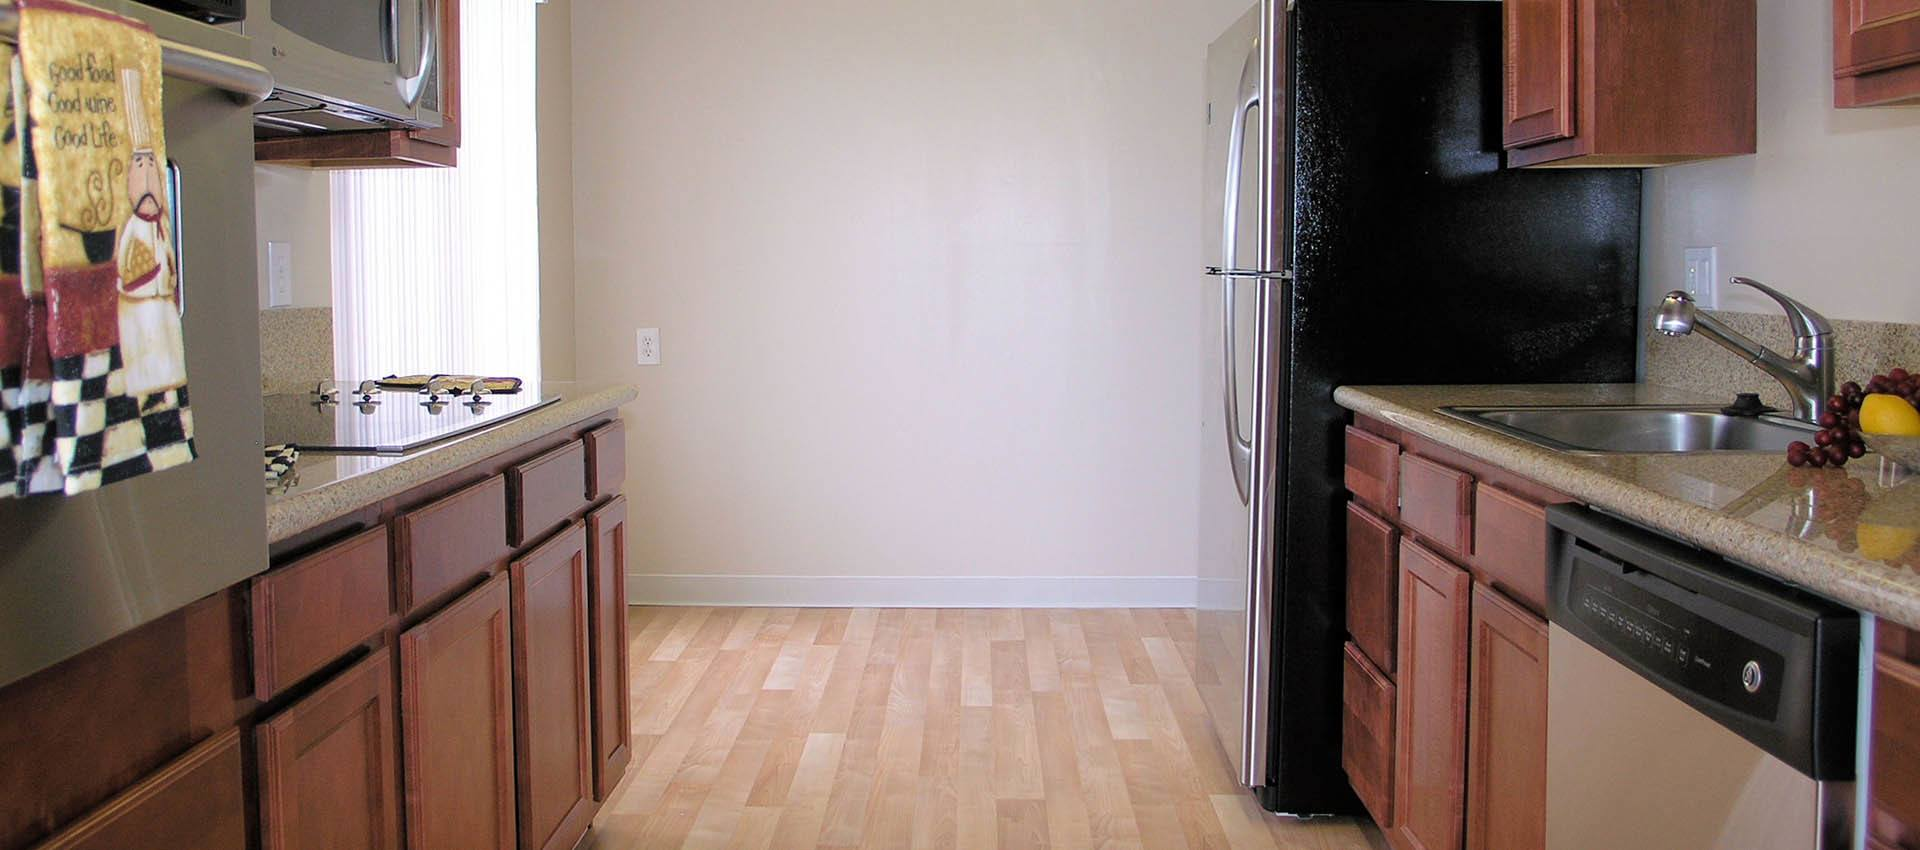 Hardwood floors at apartments in Alameda, CA